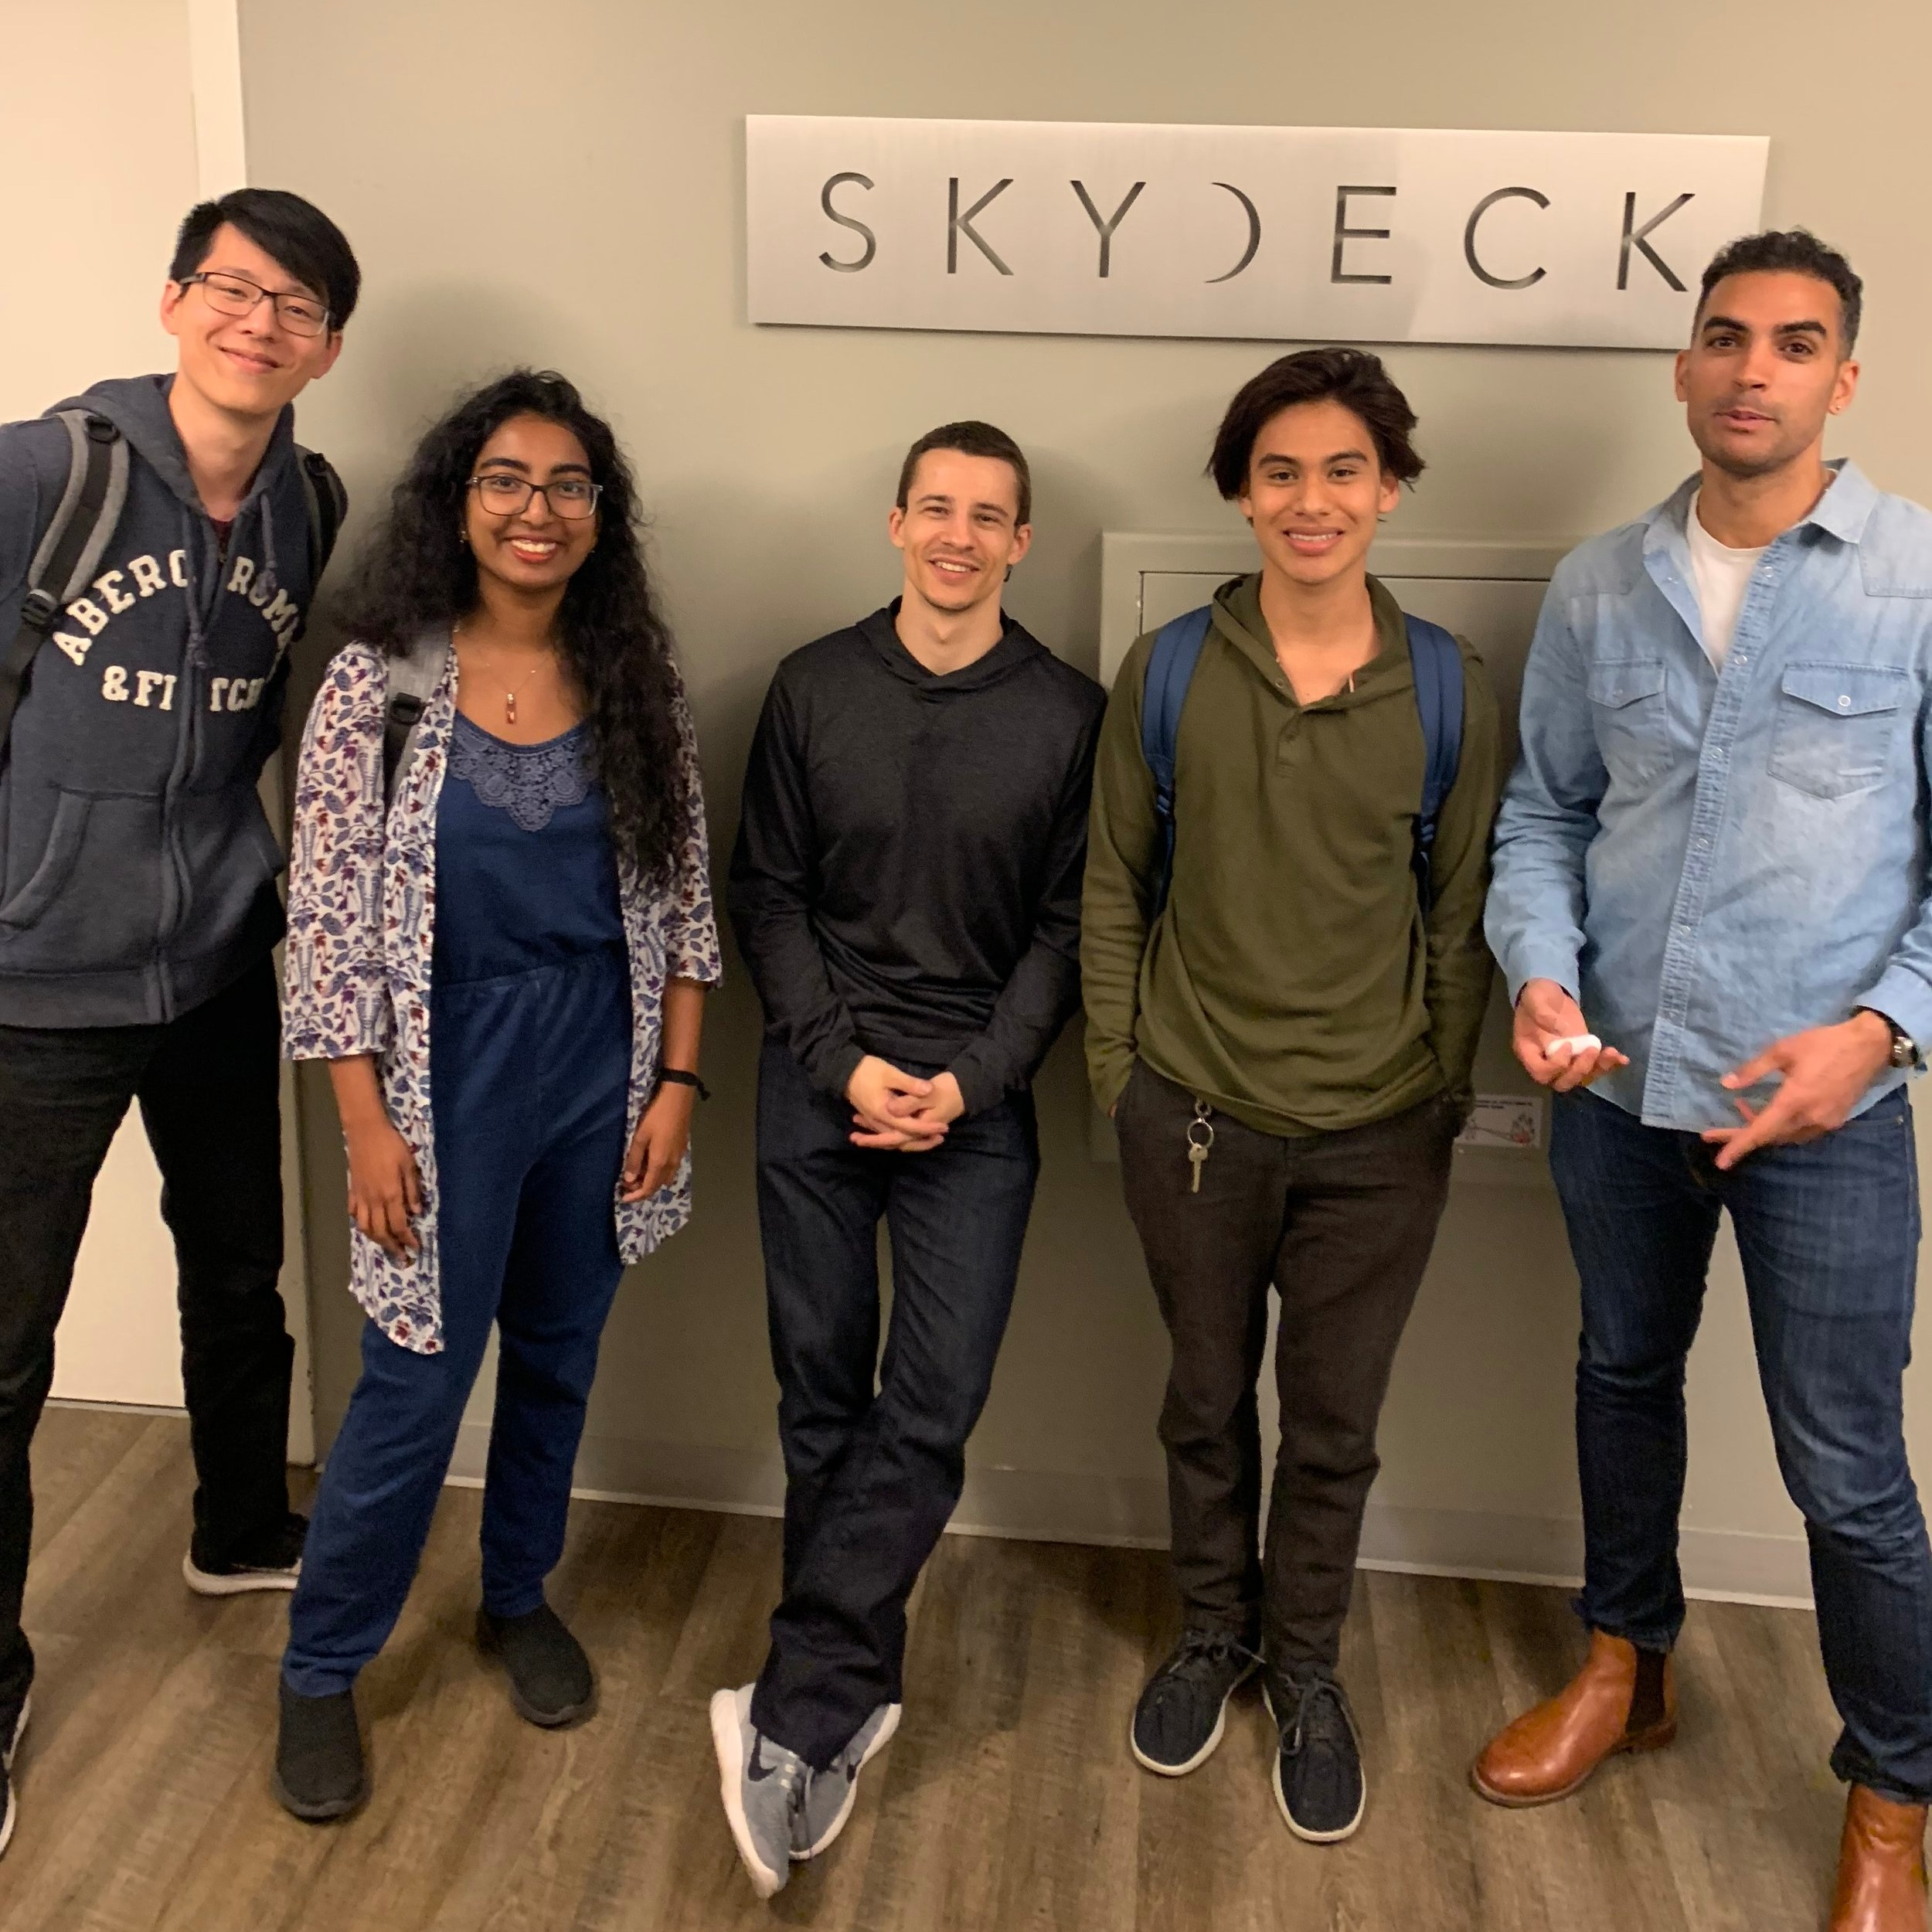 Jack Hsu – Design, Production, ME, UC Berkeley  Zeyana Musthafa - Developer, Computer Science, UC Berkeley  Mihai Bulic – Developer, Production, Computer Science, UMichigan, Senior Dev, Google  Alfonso Sanchez – Electronics, Production, EECS, UC Berkeley  Giuseppe Salento – Developer, Security, PhD Computer Science, UPenn, Lyft, Google, Intel, Samsung, HP  Jeshua Aveno – Assistive Technology Specialist, Center for Independent Living